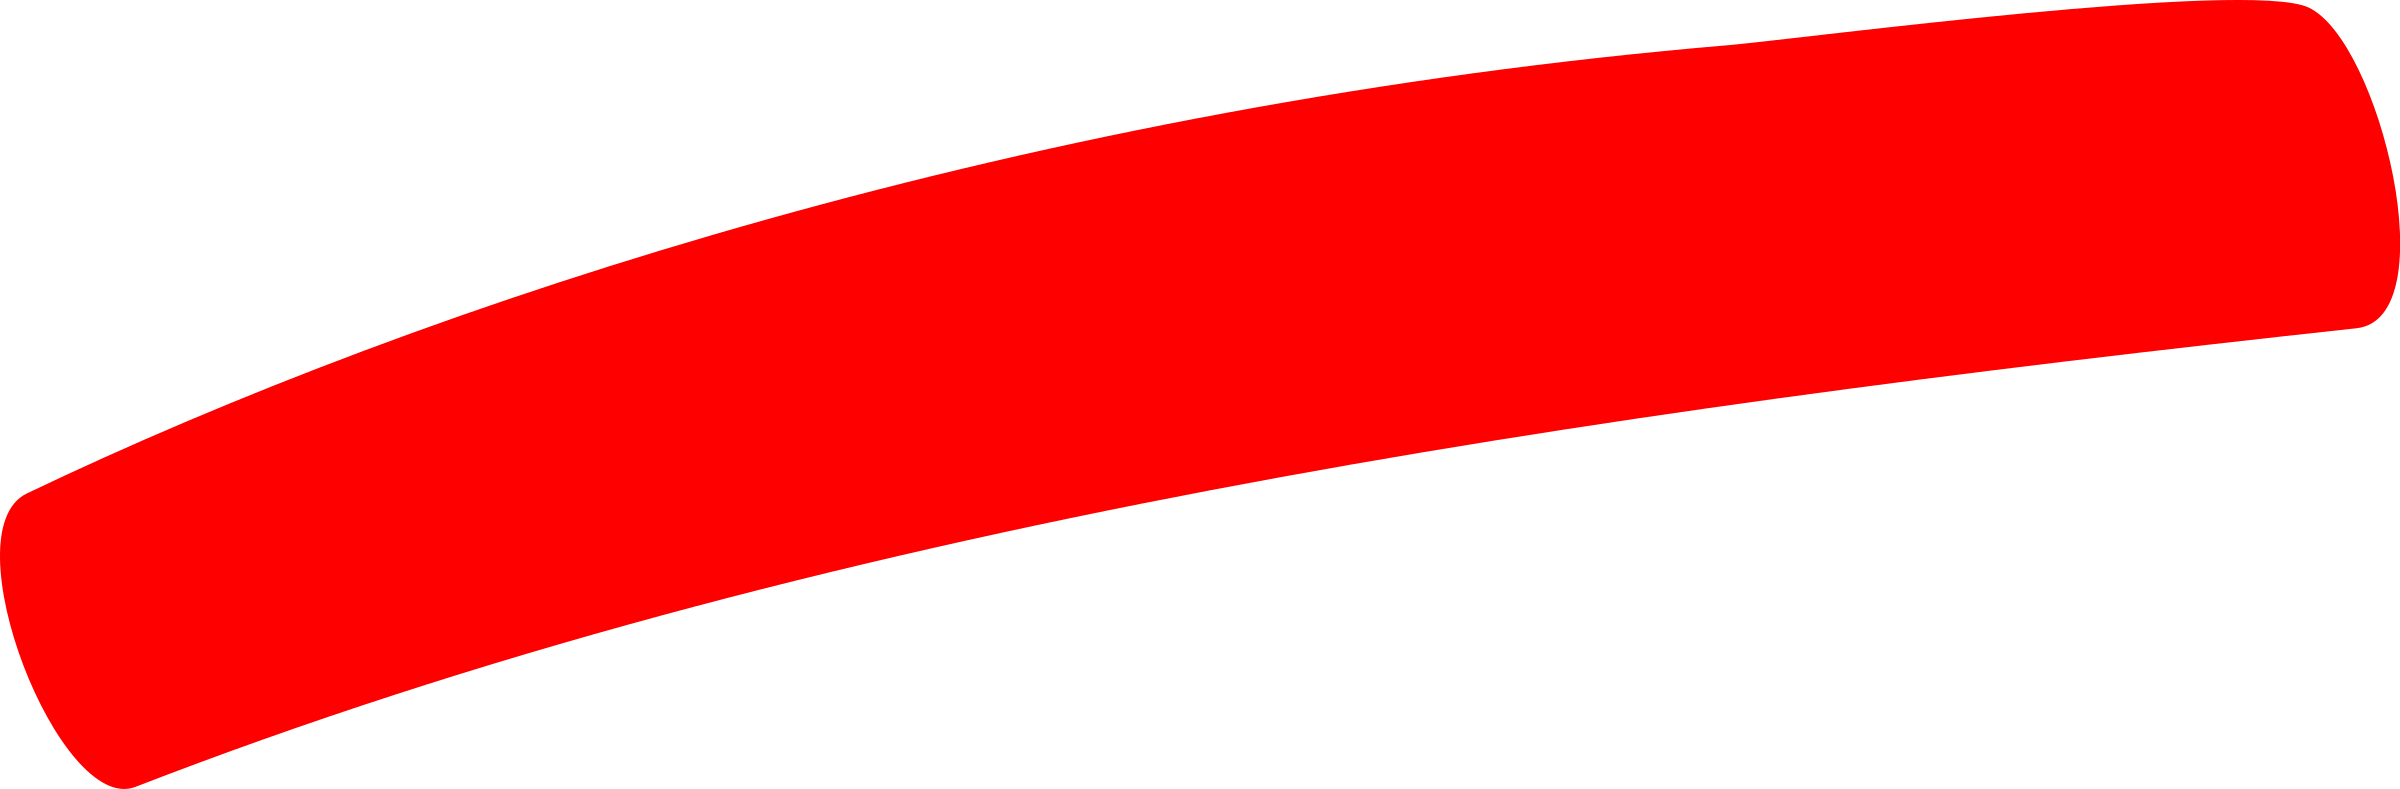 Clipart Green Checkmark And Red Minus